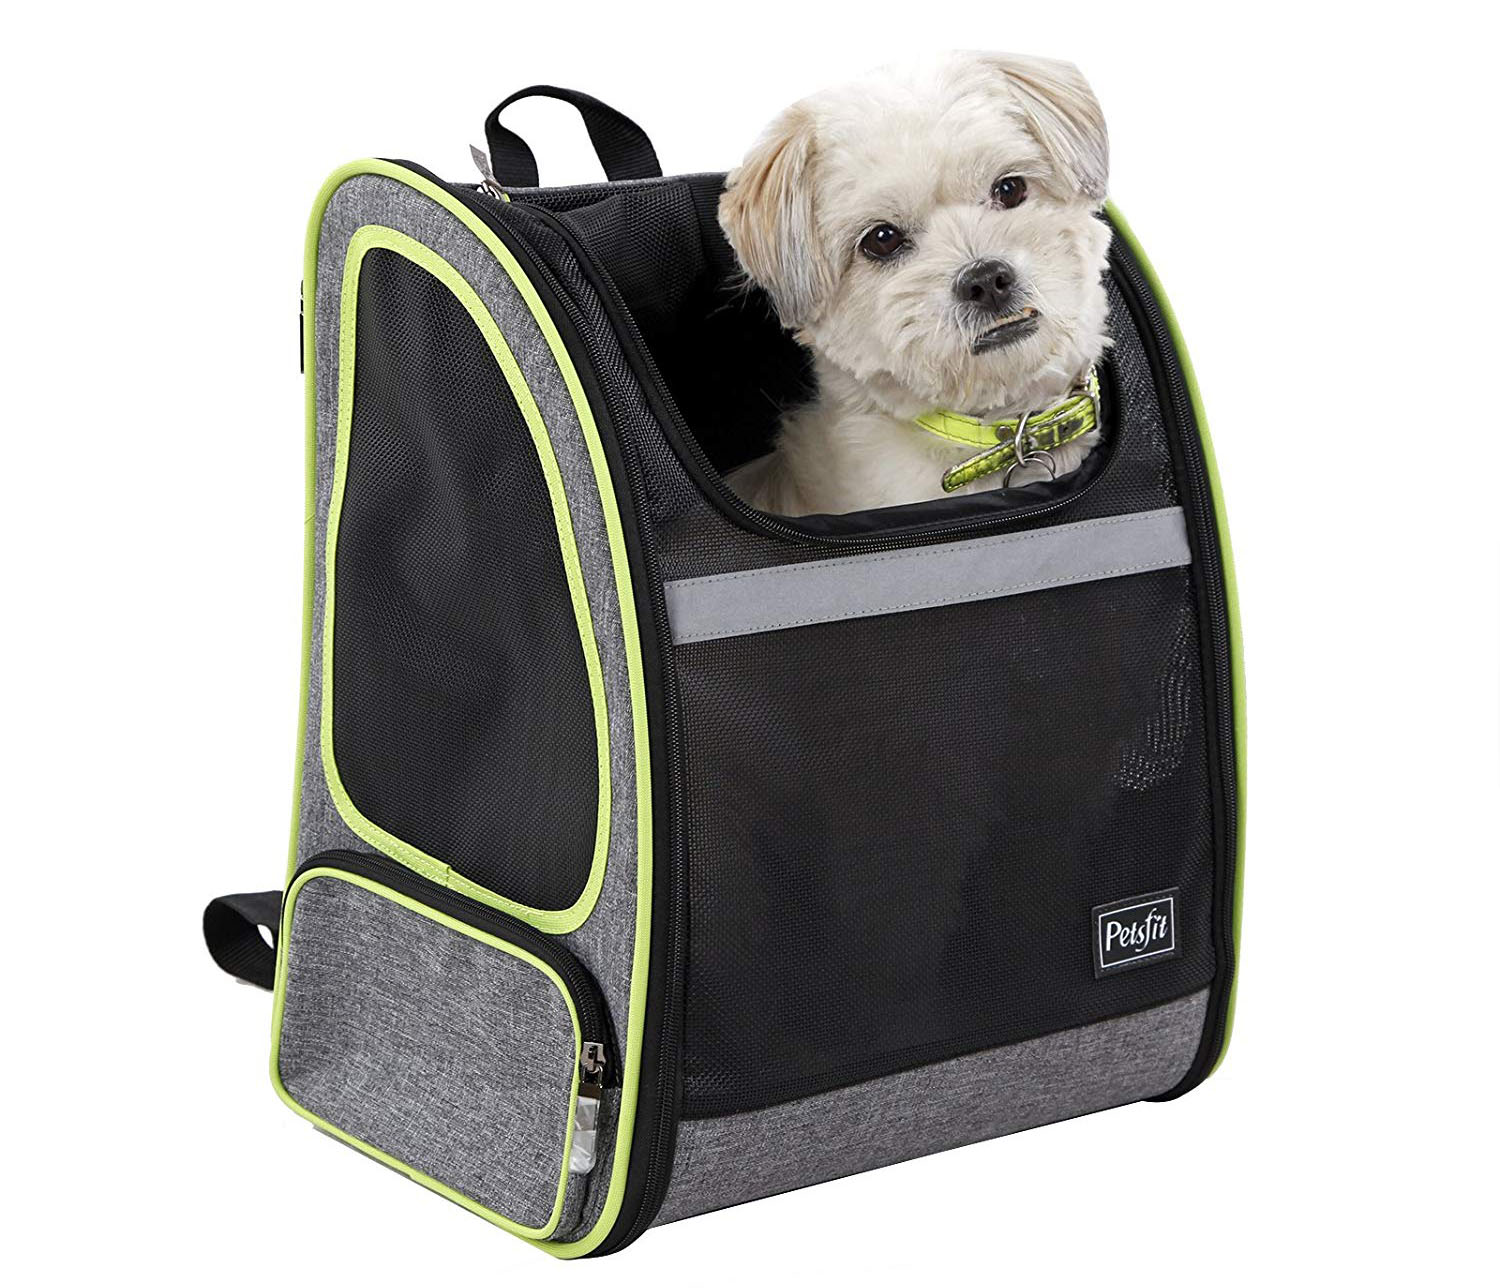 Petsfit 17.3H 13 W10.6L Inches Comfort Dogs Carriers Backpack for Cat Or Dog, Go for A Walk, Hiking, Traveling and Cycling